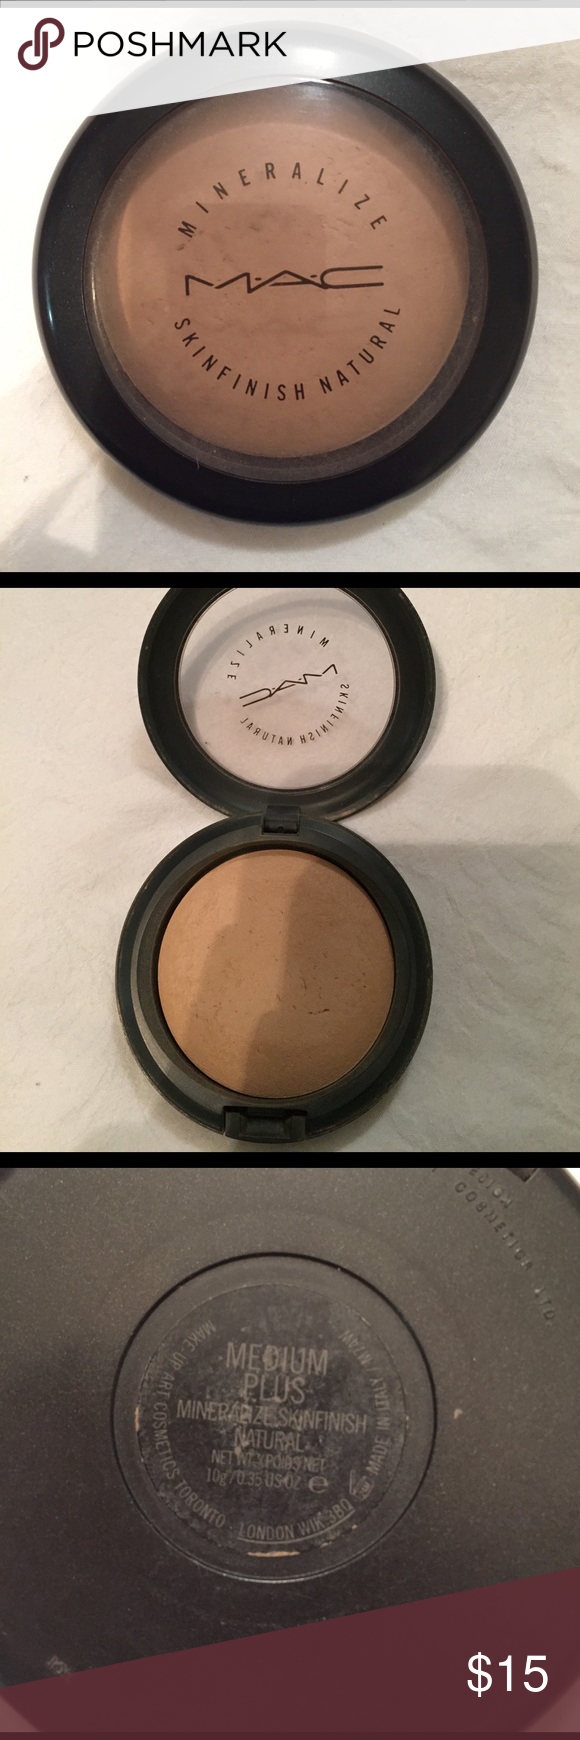 "MAC Mineralize MINERALIZE SKINFINISH NATURAL POWDER IN THE COLOR ""MEDIUM PLUS"" . USED NO MORE THAN A HANDFULL OF TIMES, SO MUCH PRODUCT LEFT MAC Cosmetics Makeup"